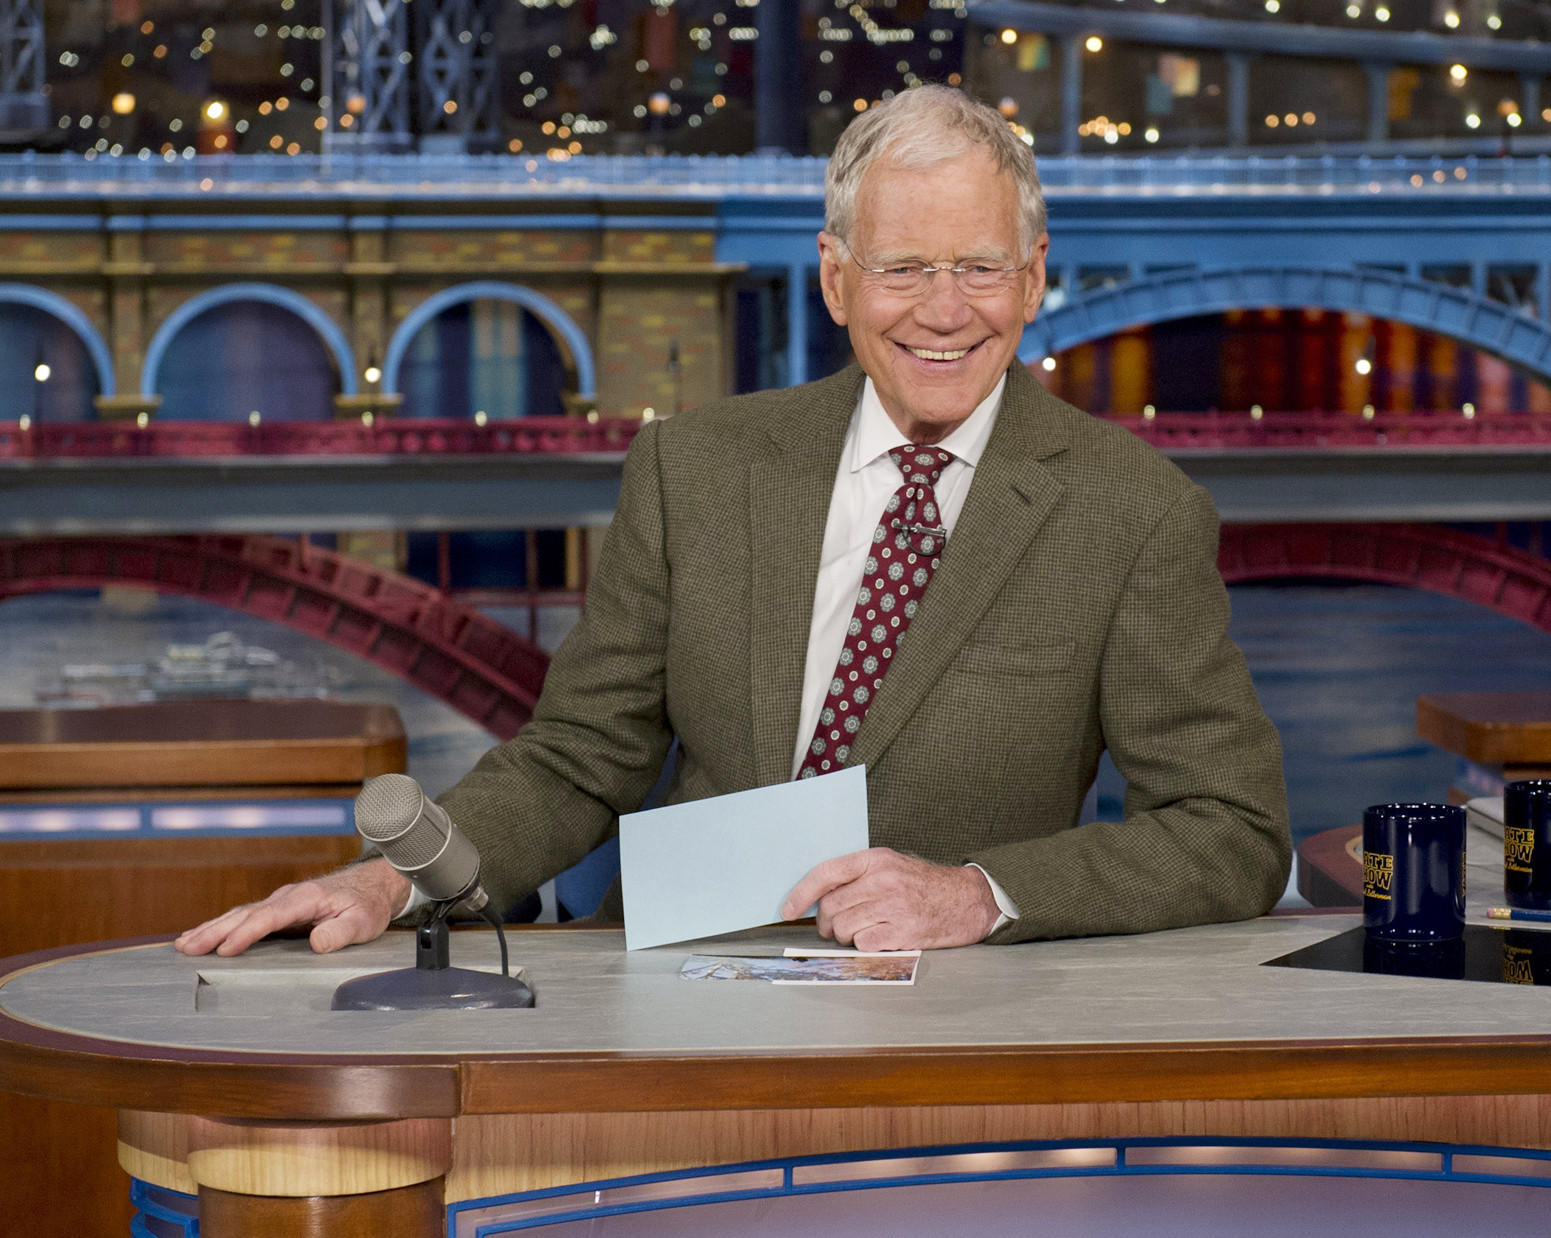 David Letterman Sits At His Late Show Desk During The Broadcast In Which He